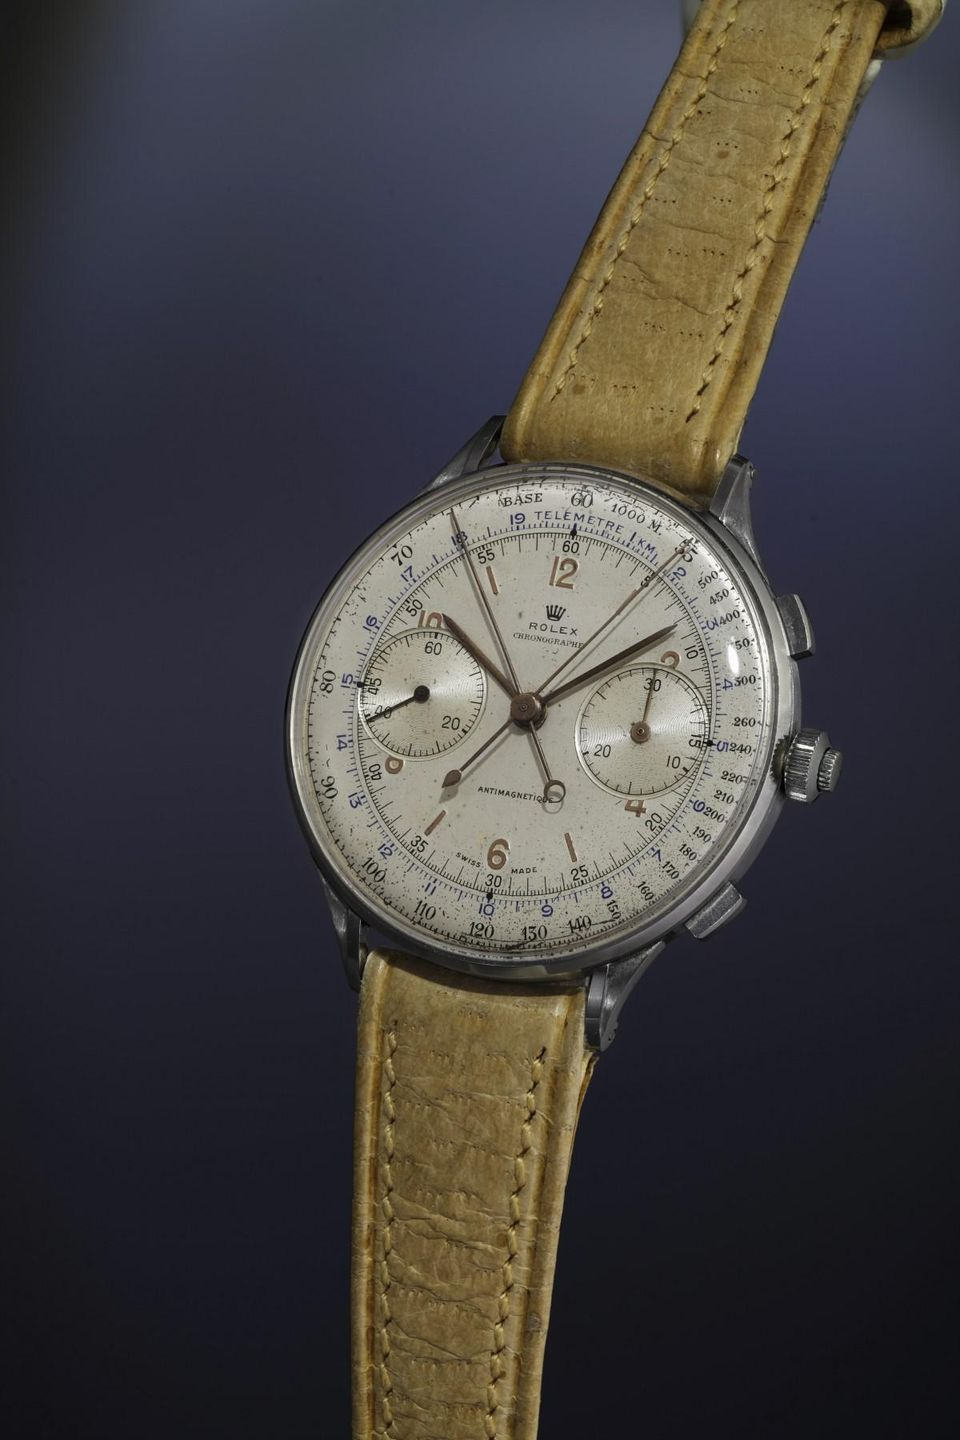 3rd most expensive Rolex watch in the world